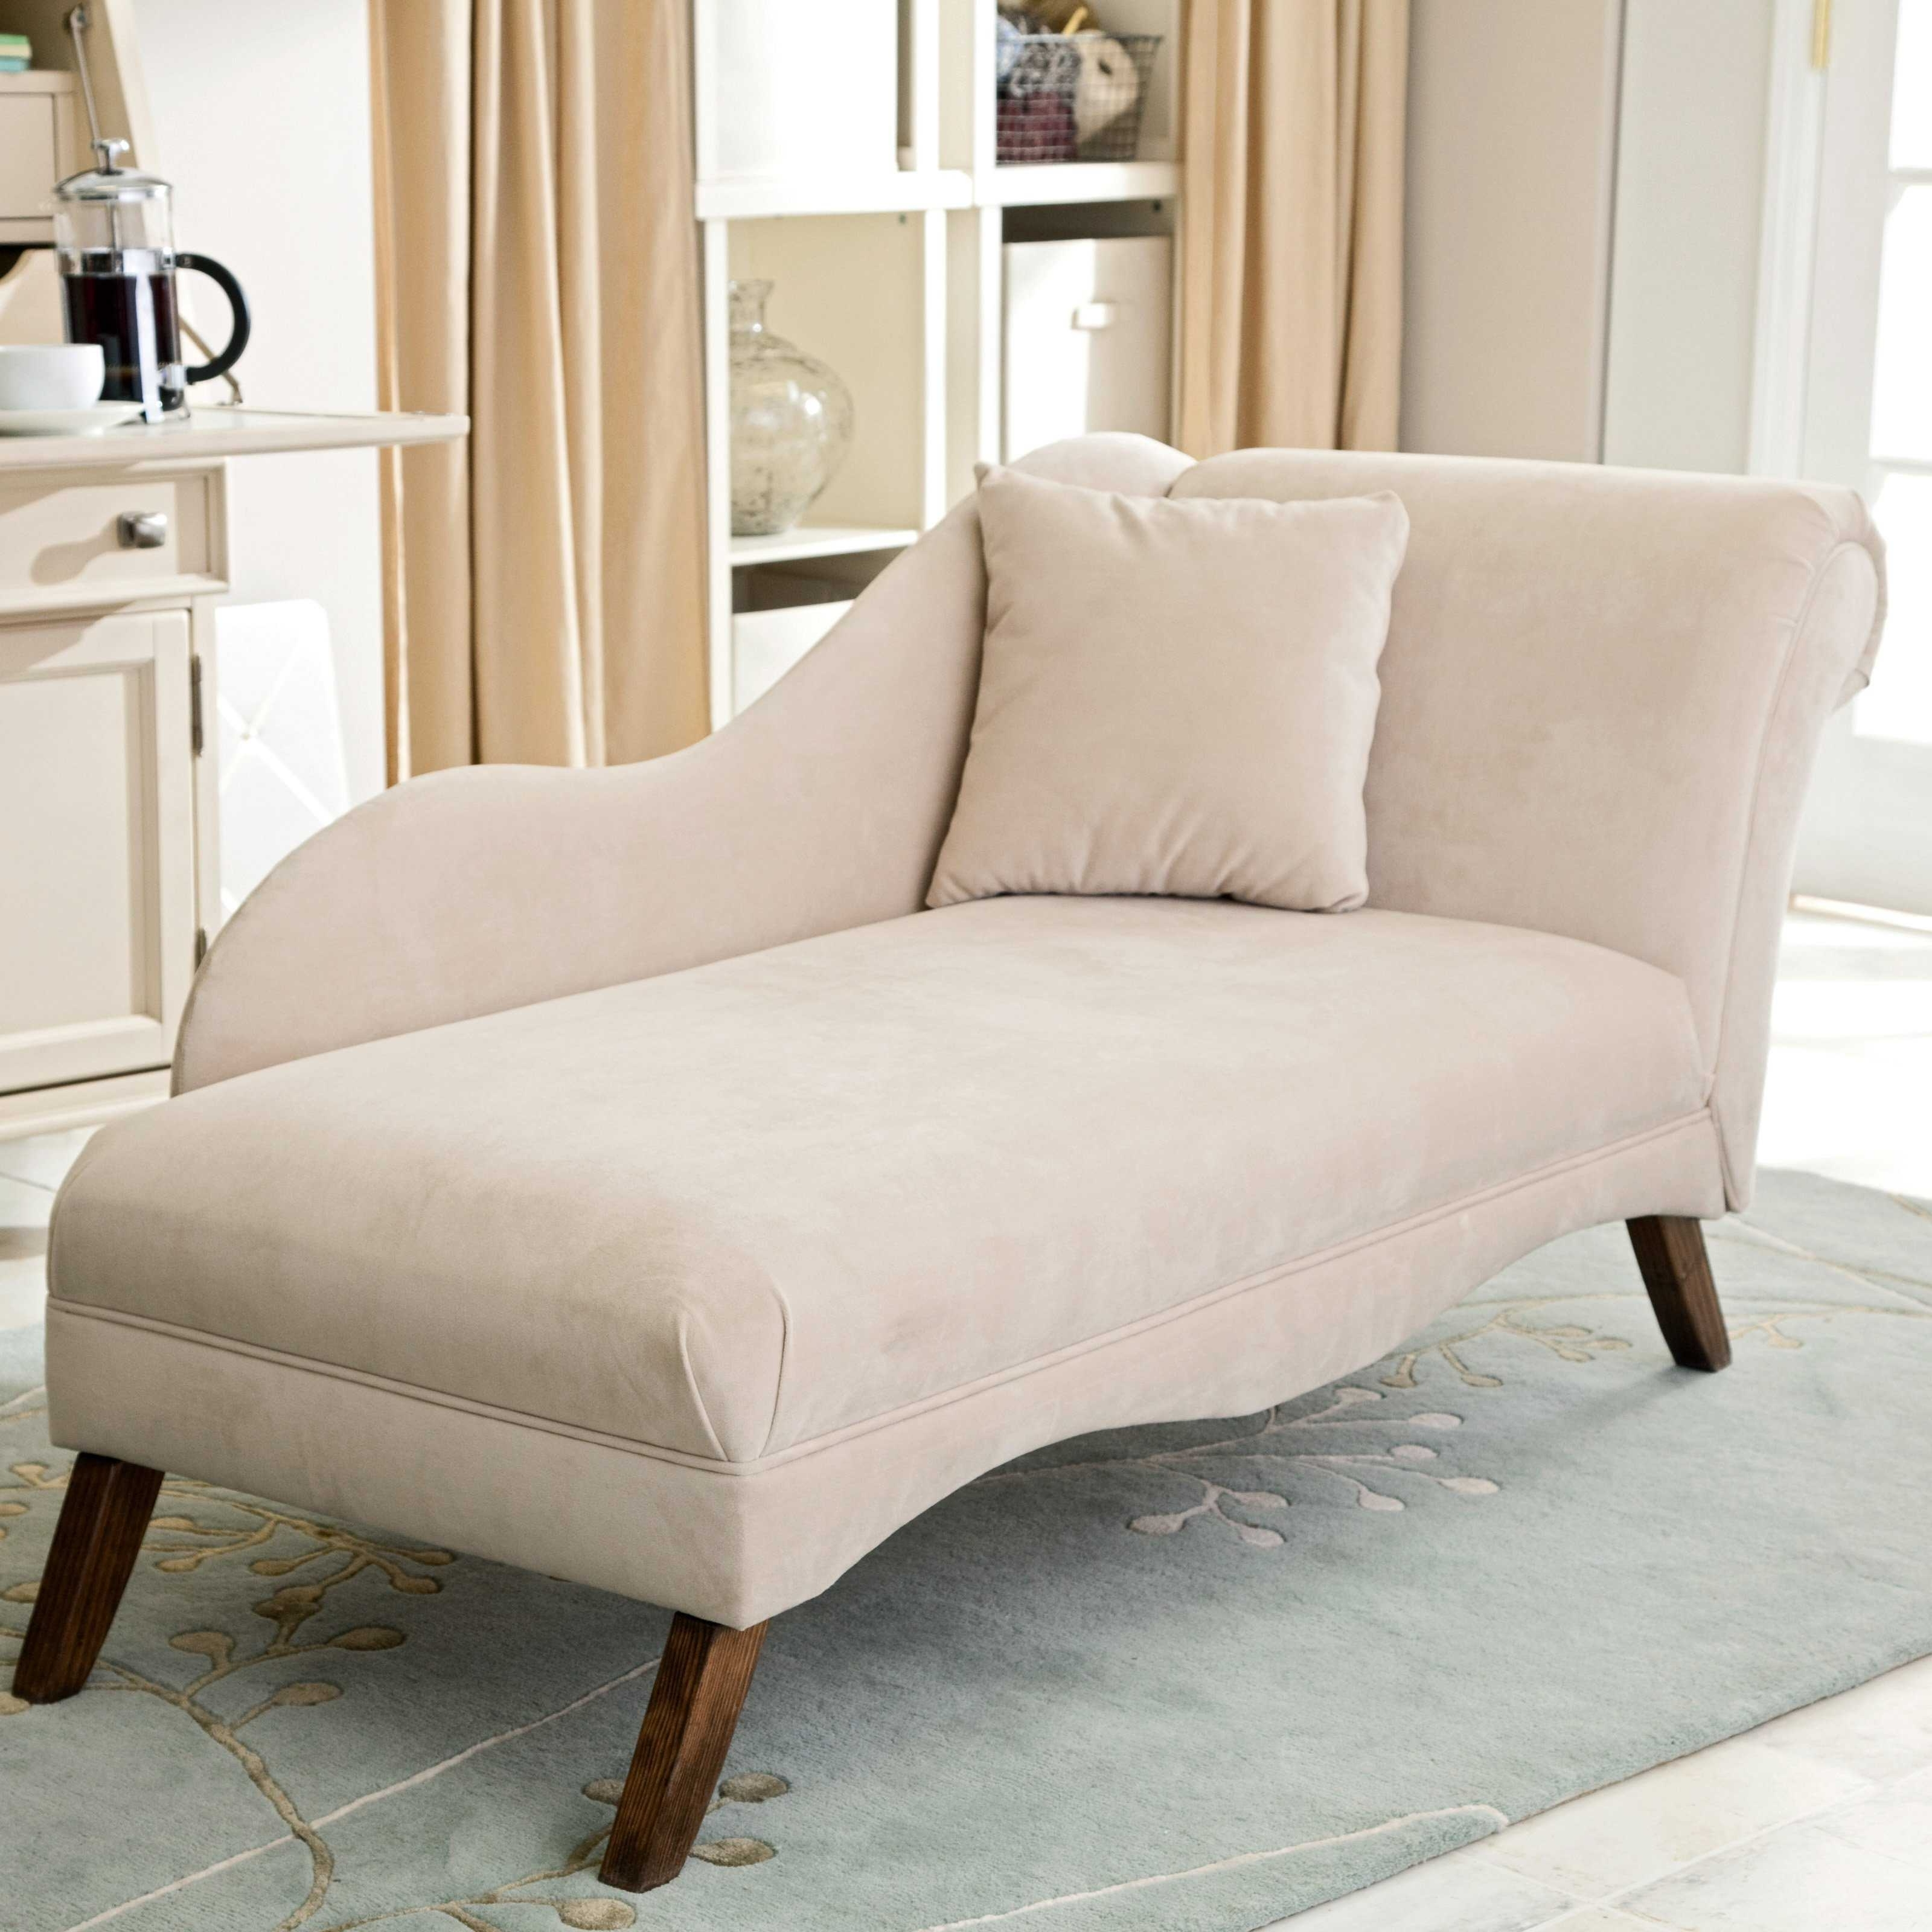 Best And Newest Lounge Chair : Chair Most Comfortable Lounge Chair White Chaise For Comfortable Chaise Lounges (View 6 of 15)